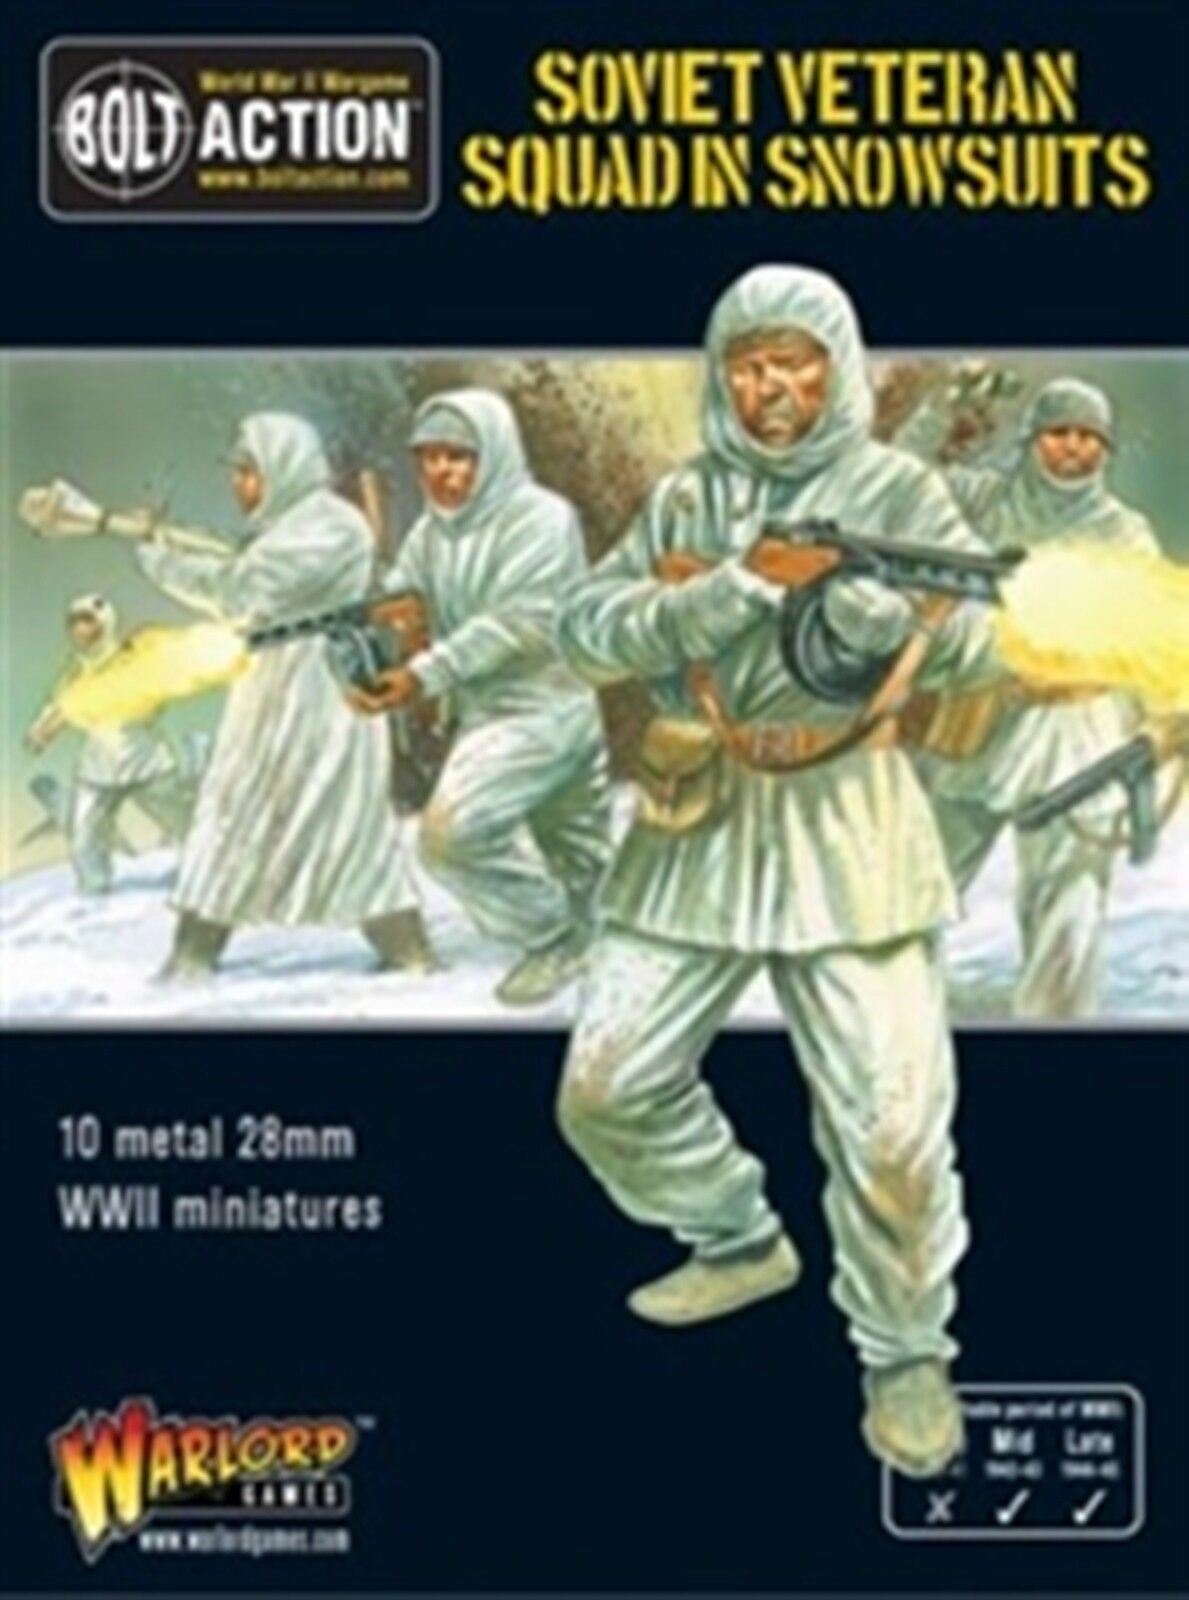 NEW BOLT ACTION MINIATURE SOVIET VETERAN SQUAD IN SNOWSUITS FIGURES 402214001